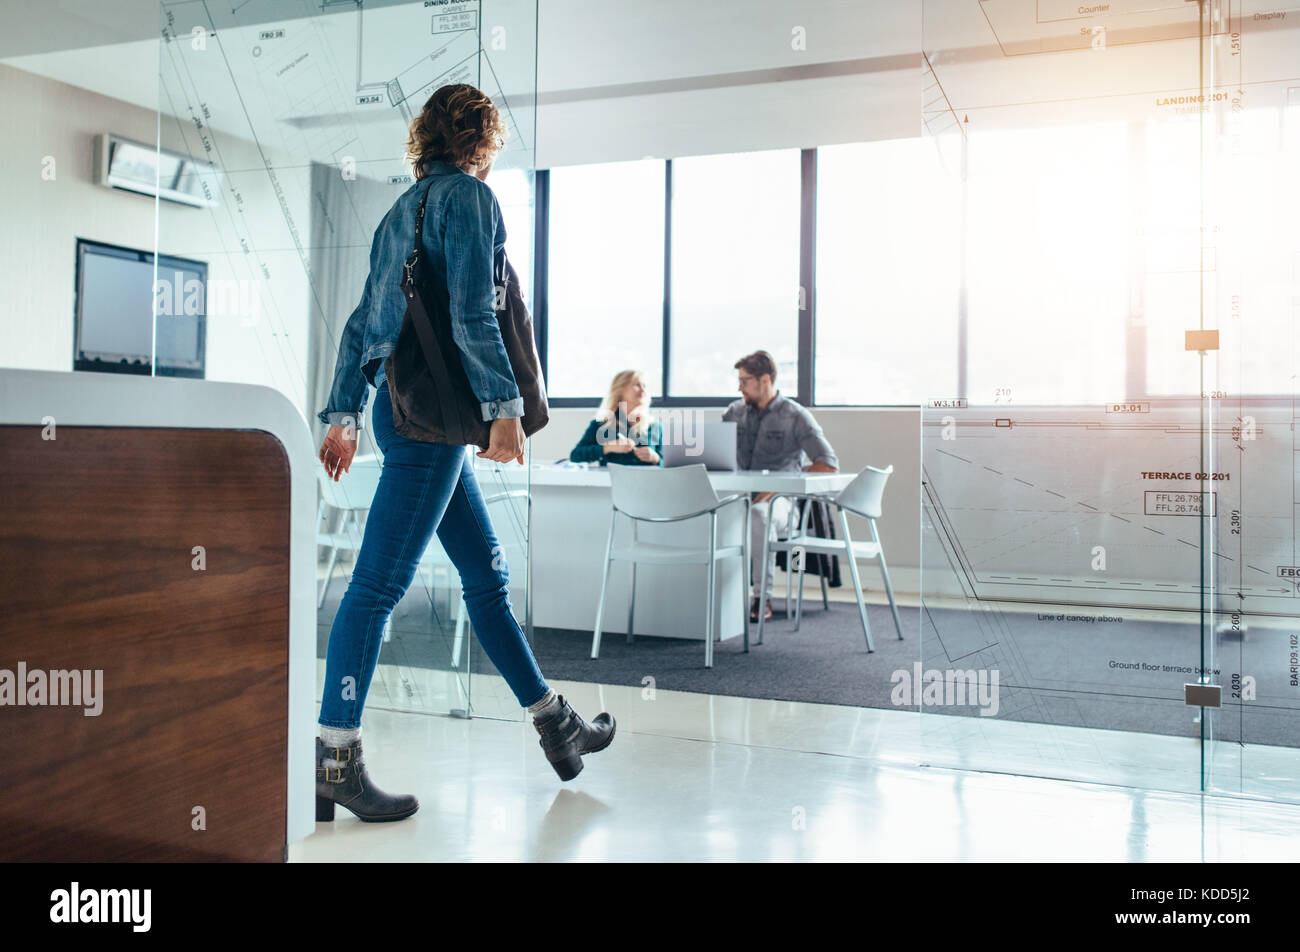 Female client moving forward towards conference room for meeting with designers. Creative office with executives - Stock Image